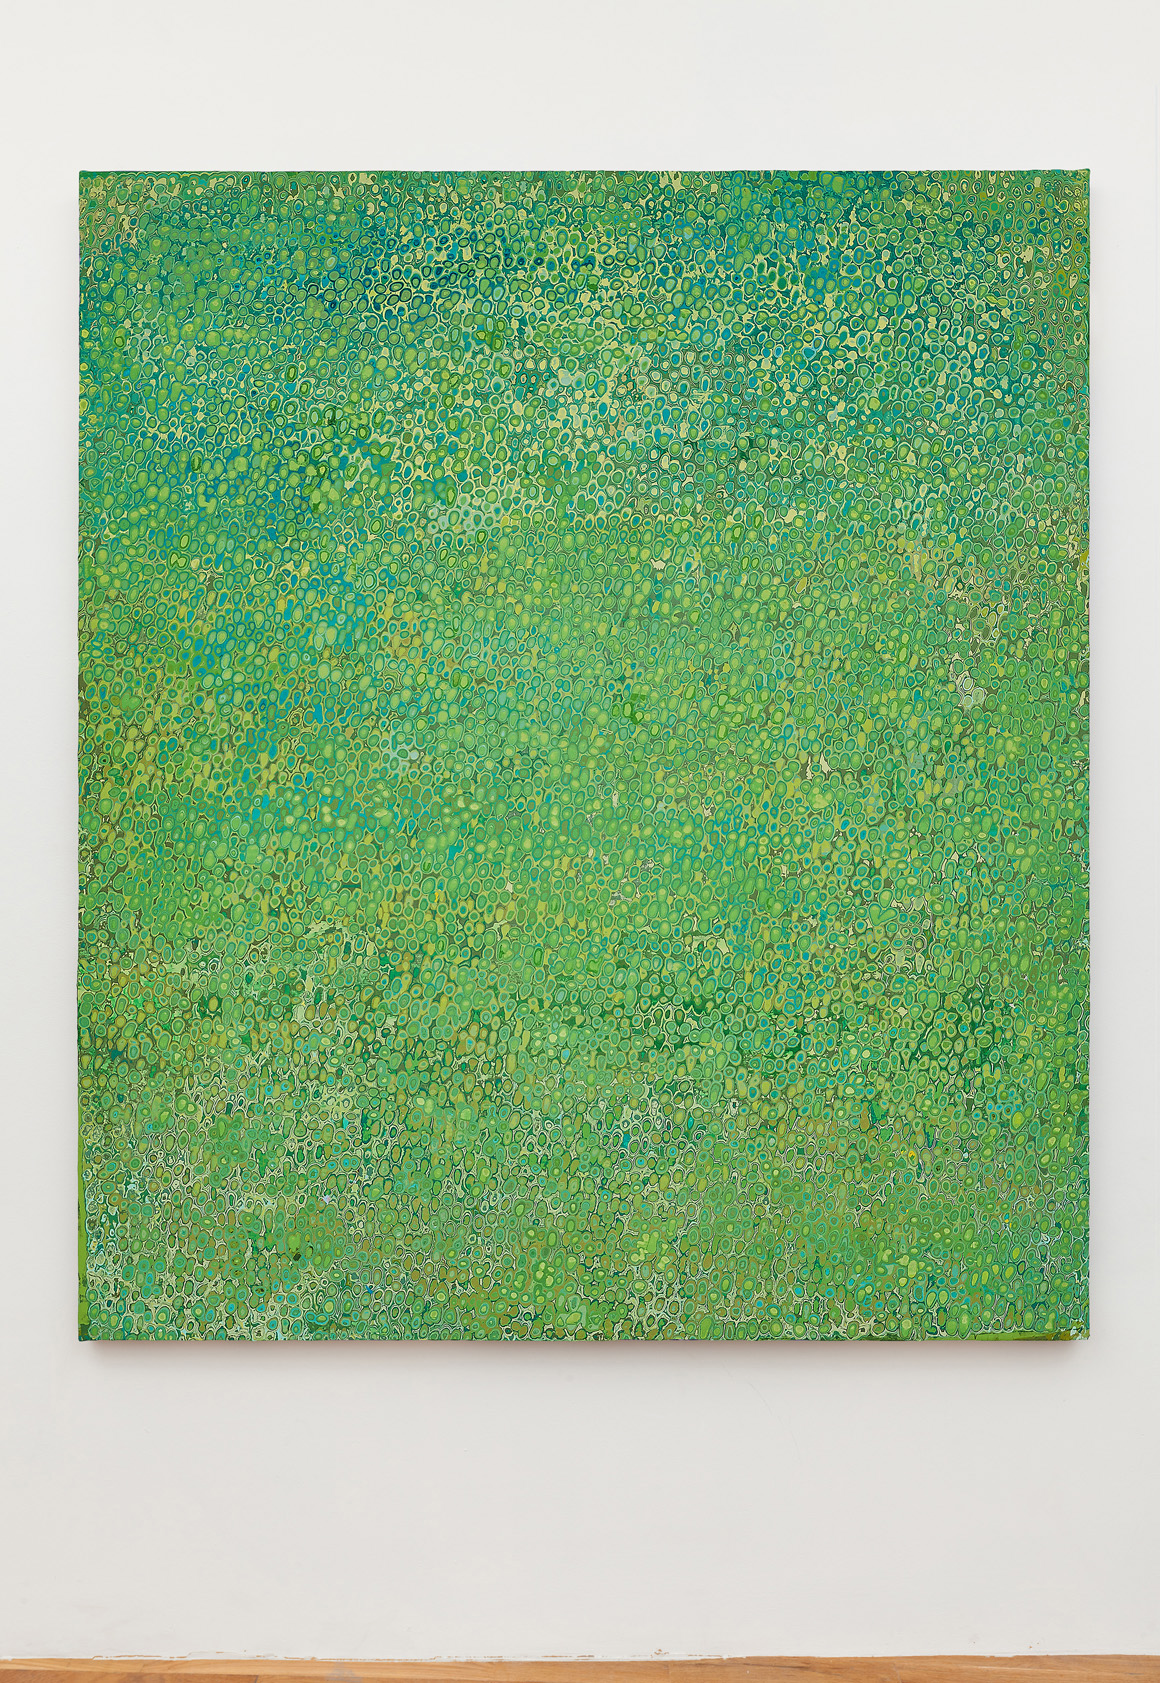 """<p><span class=""""name"""">Andrew Jensdotter</span><br><em>Green 79</em><span class='media'>Carved latex on canvas</span>80 x 68 in (203.2 x 172.7 cm)<br>2018<br><a class='inquire' href='mailto:info@gildargallery.com?subject=Artwork Inquiry AJEN0050&body=I am interested in finding out more about Green 79 by Andrew Jensdotter'>Inquire</a></p>"""